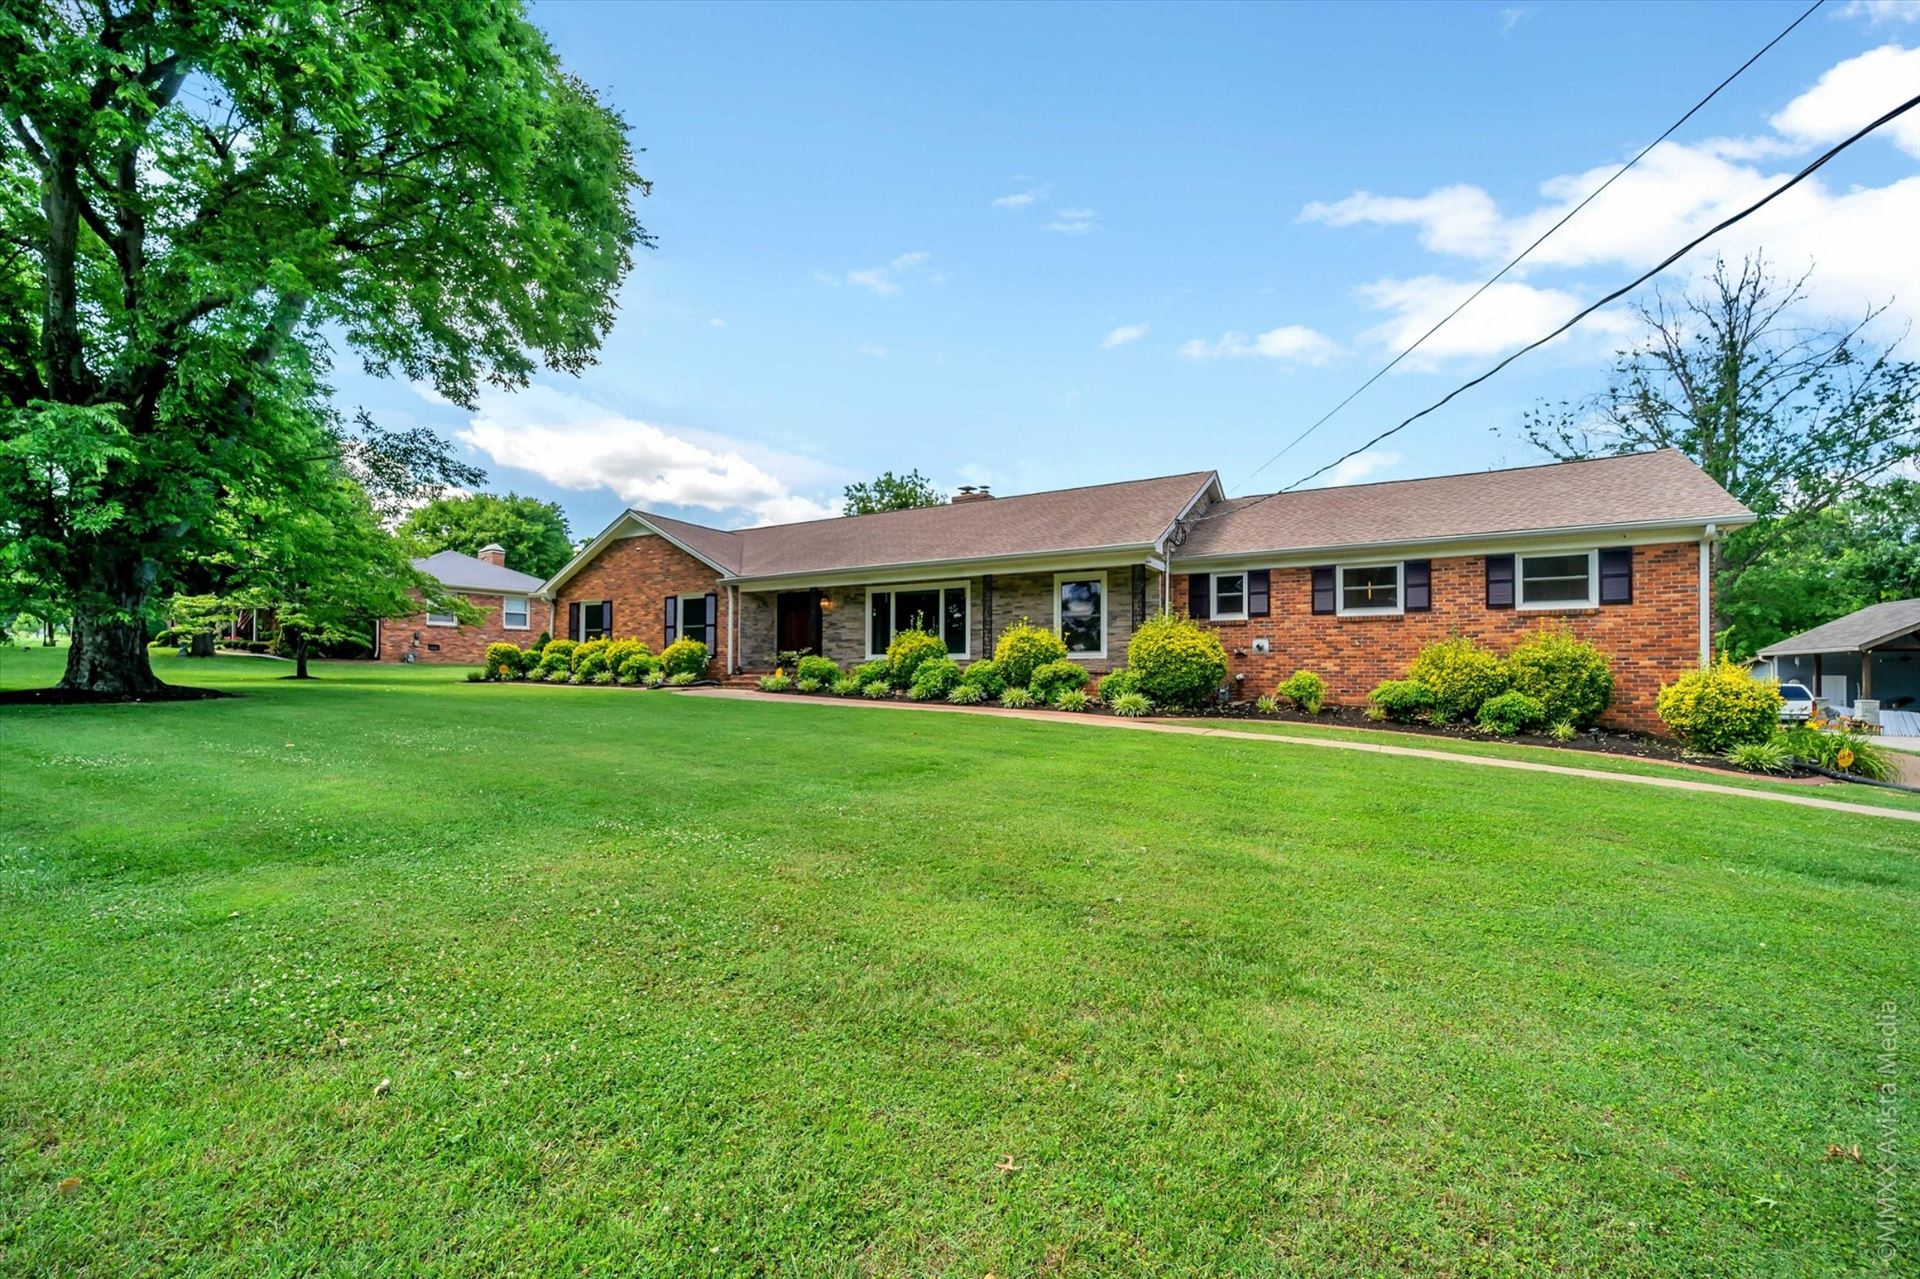 302 Rolling Mill Rd, Old Hickory, TN 37138 - MLS#: 2263750